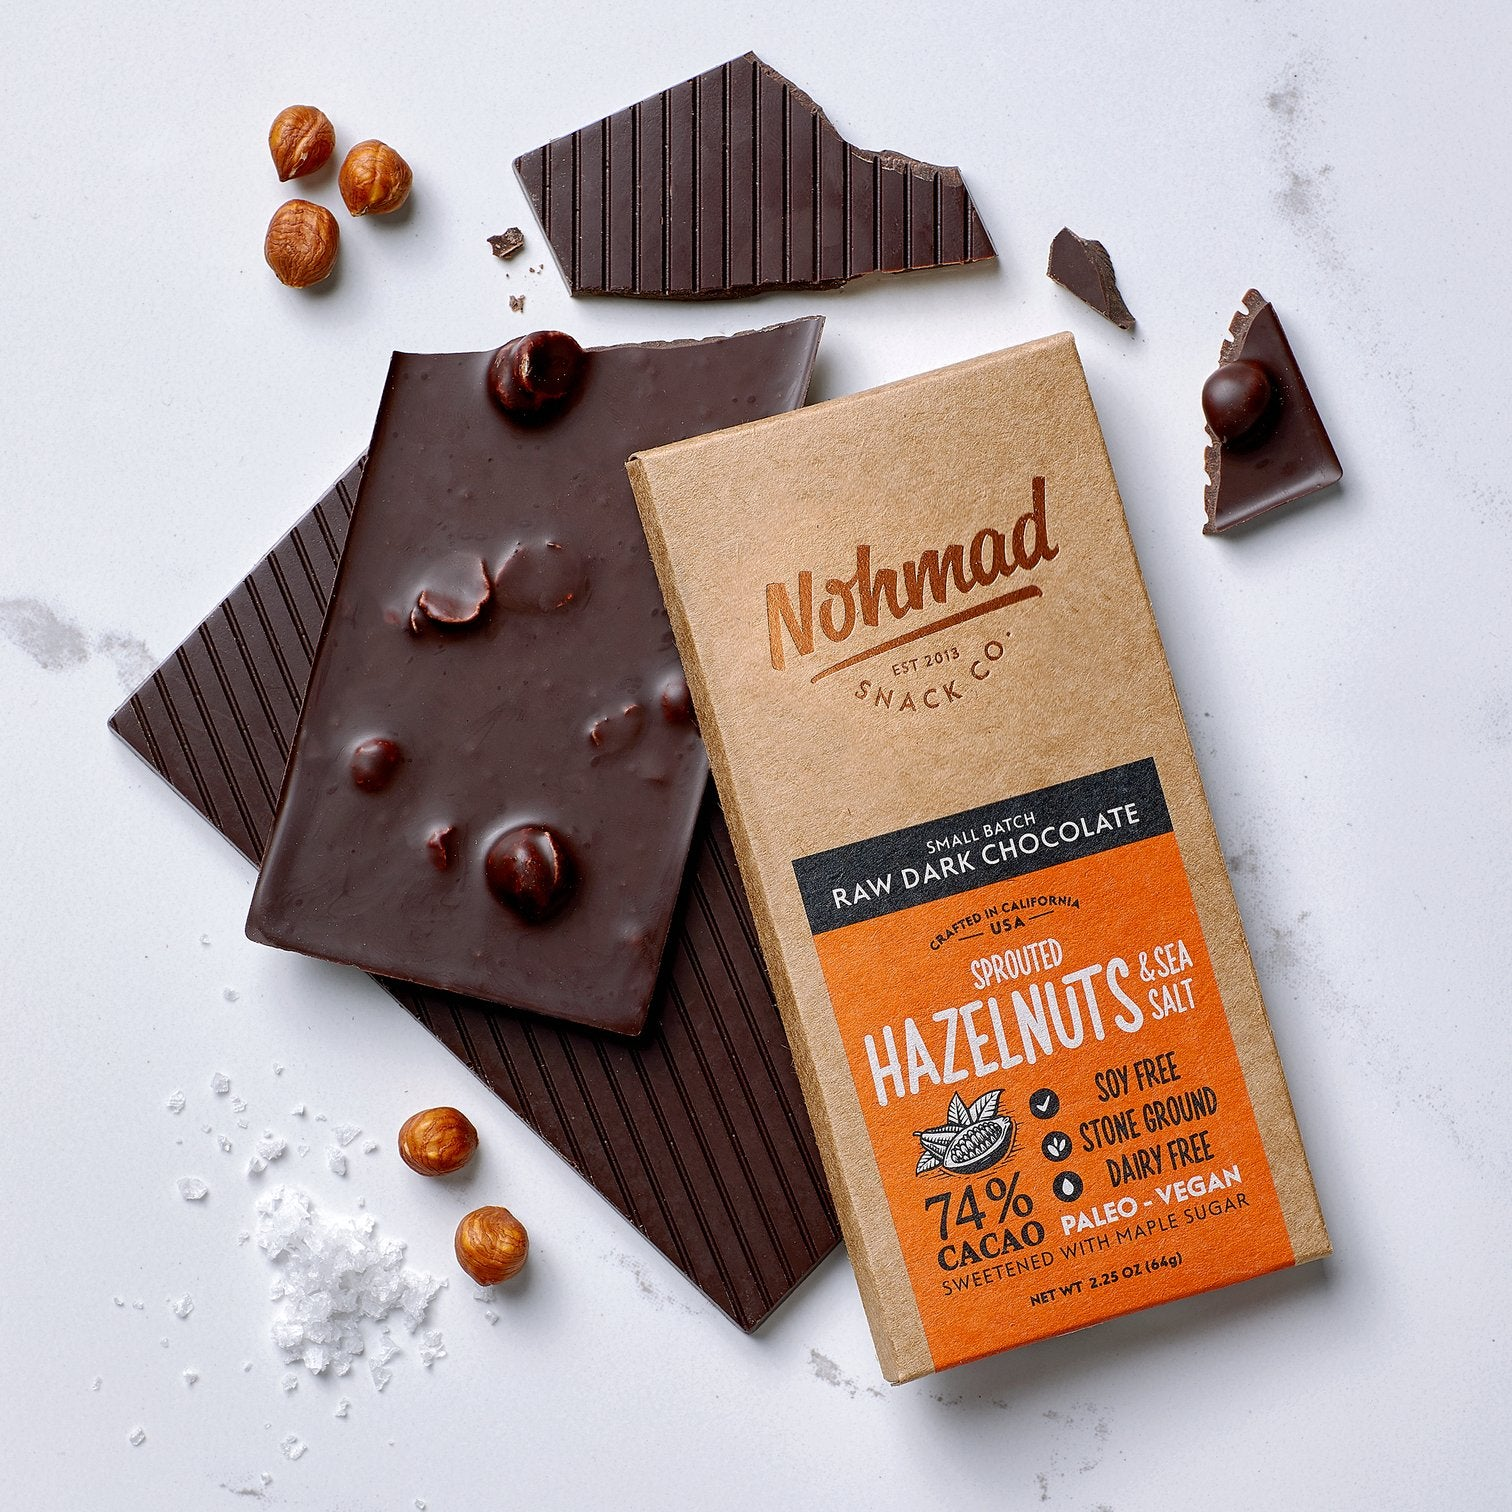 Nohmad - Raw Dark Chocolate Hazelnut